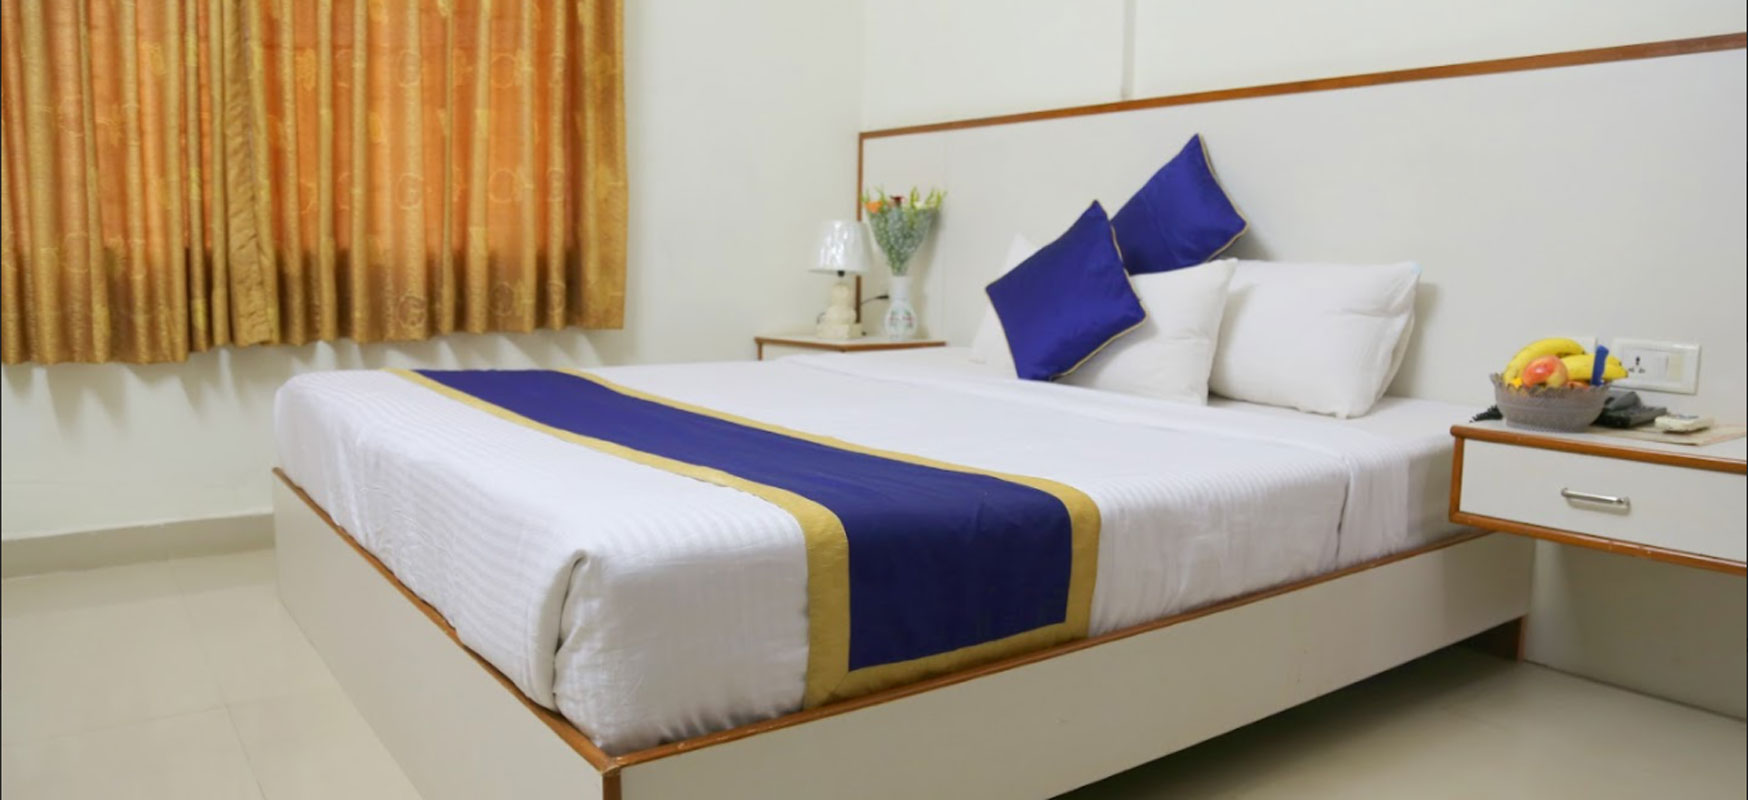 Hotel near bangalore airport | Airport Gateway is well known hotel near kempegowda international airport successfully serving people for past 10 years.